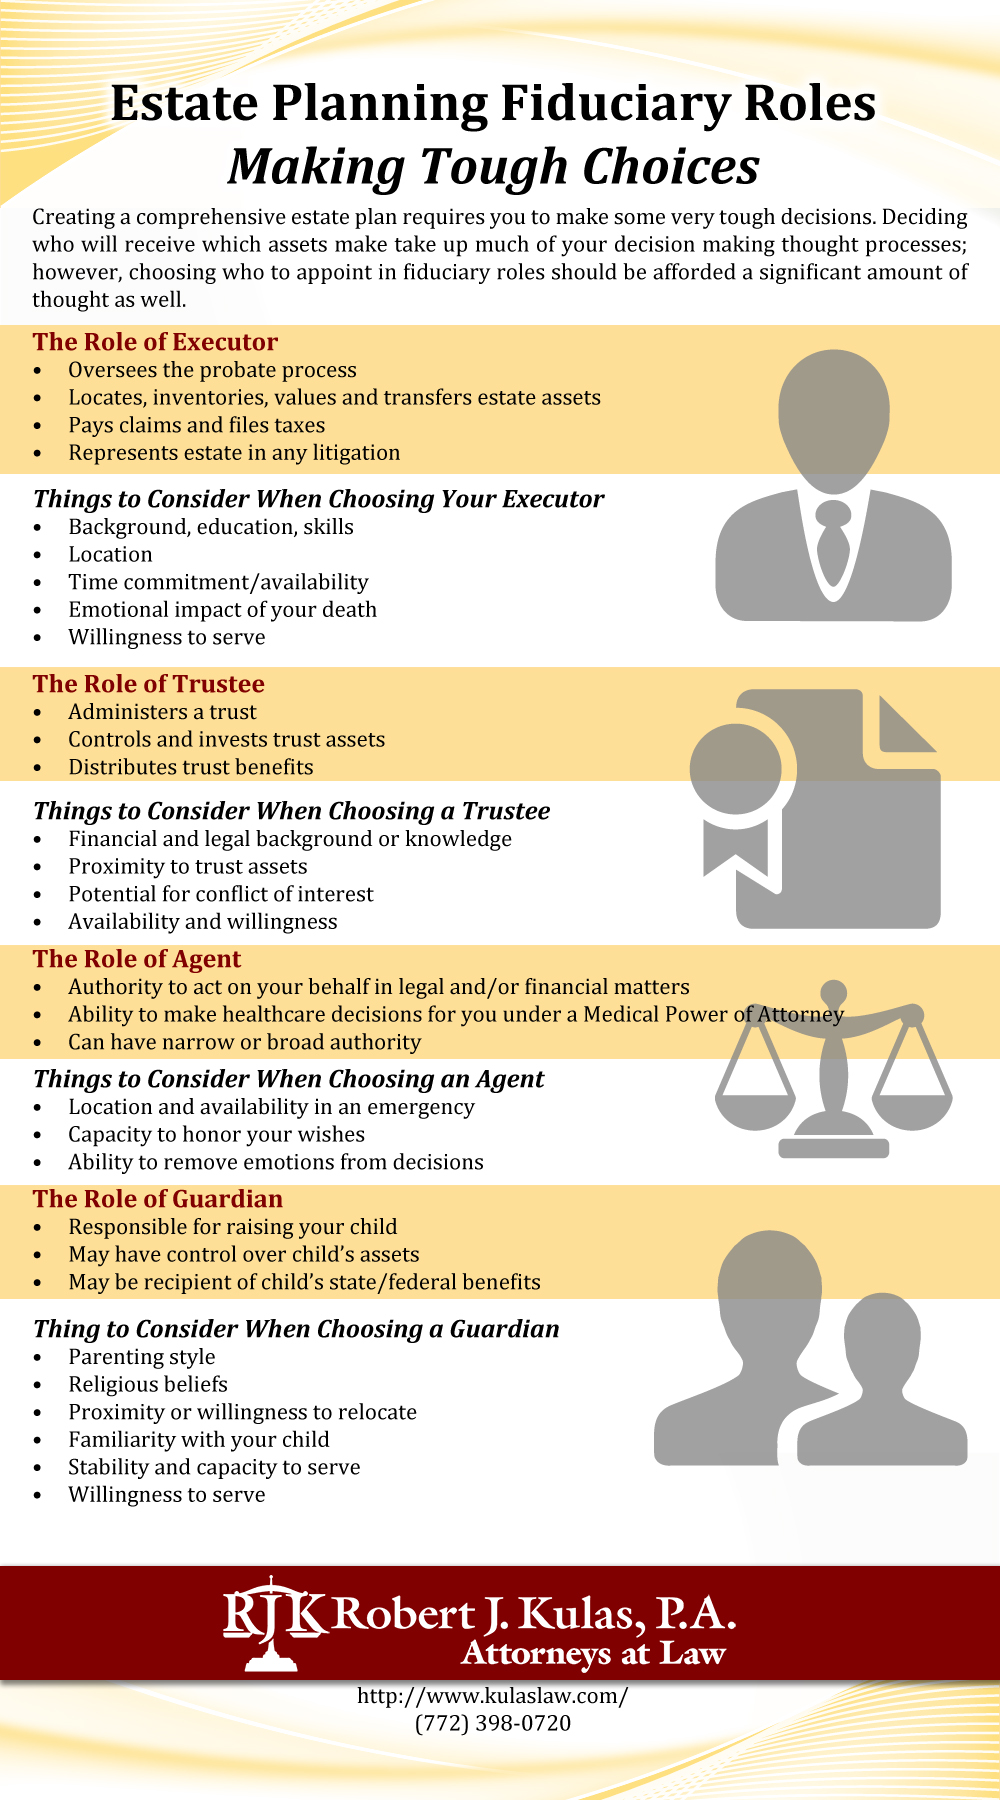 Worksheets Estate Planning Worksheet estate planning fiduciary roles making tough choices infographic infographic